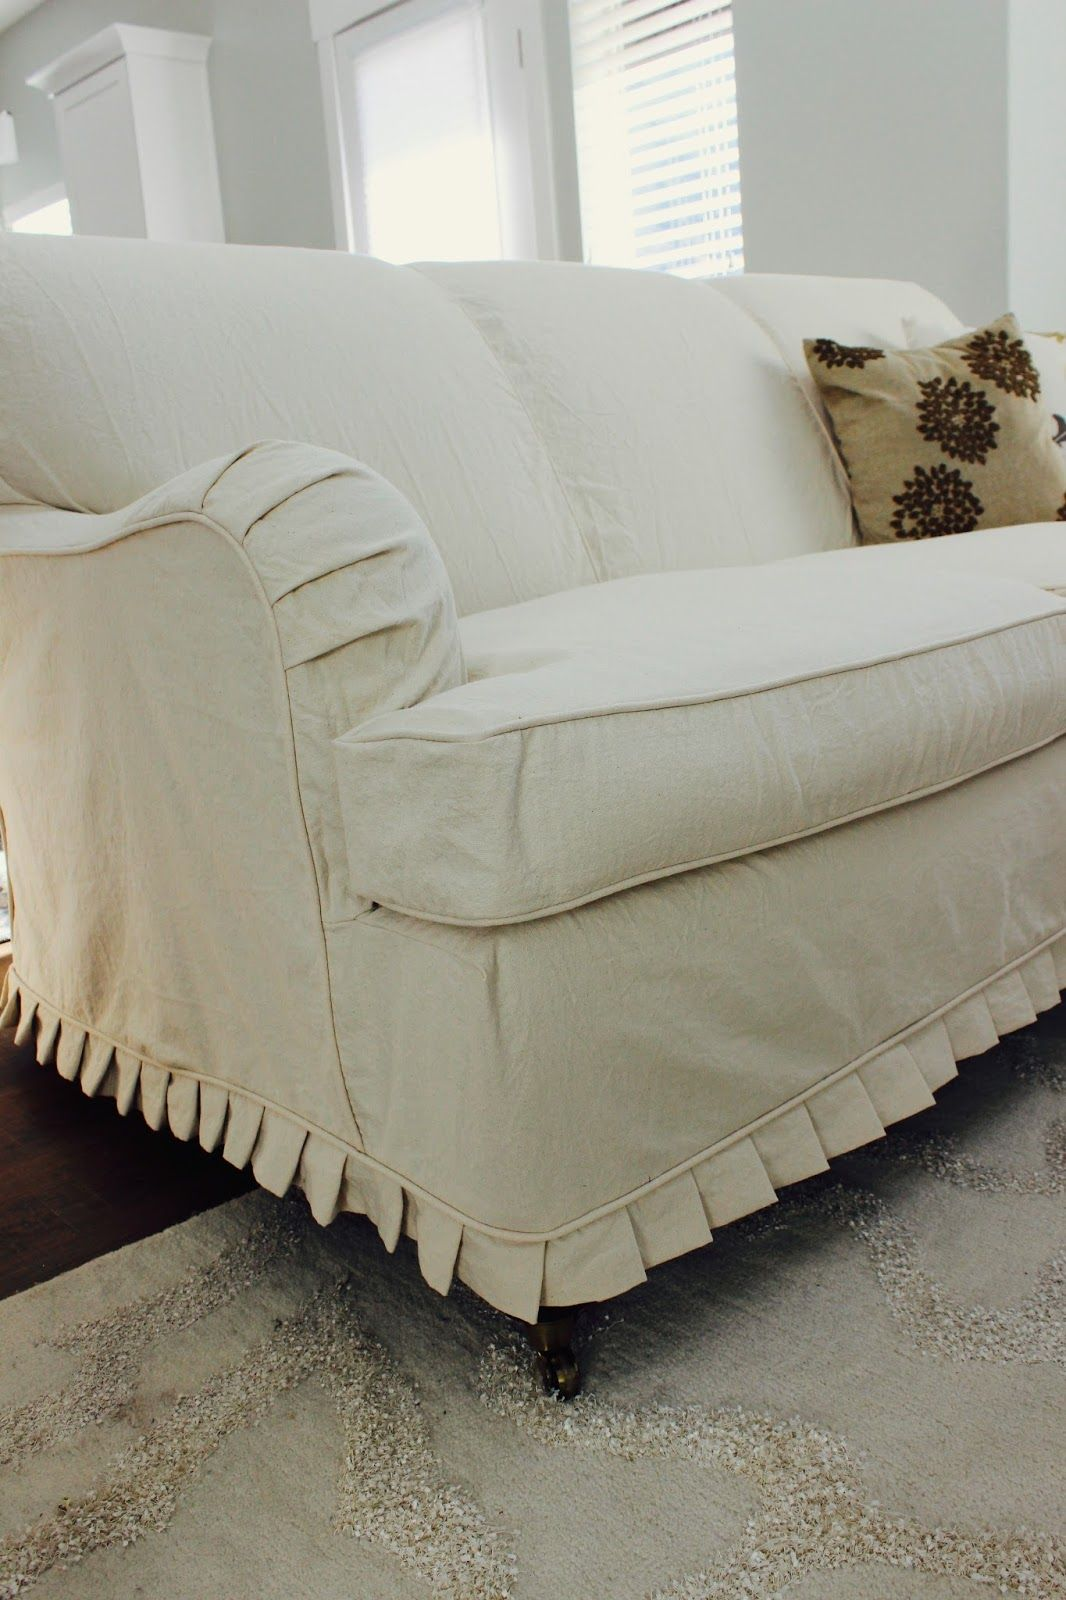 Cream Duck Cloth Couch Slipcovers For Chairs Custom Sofa